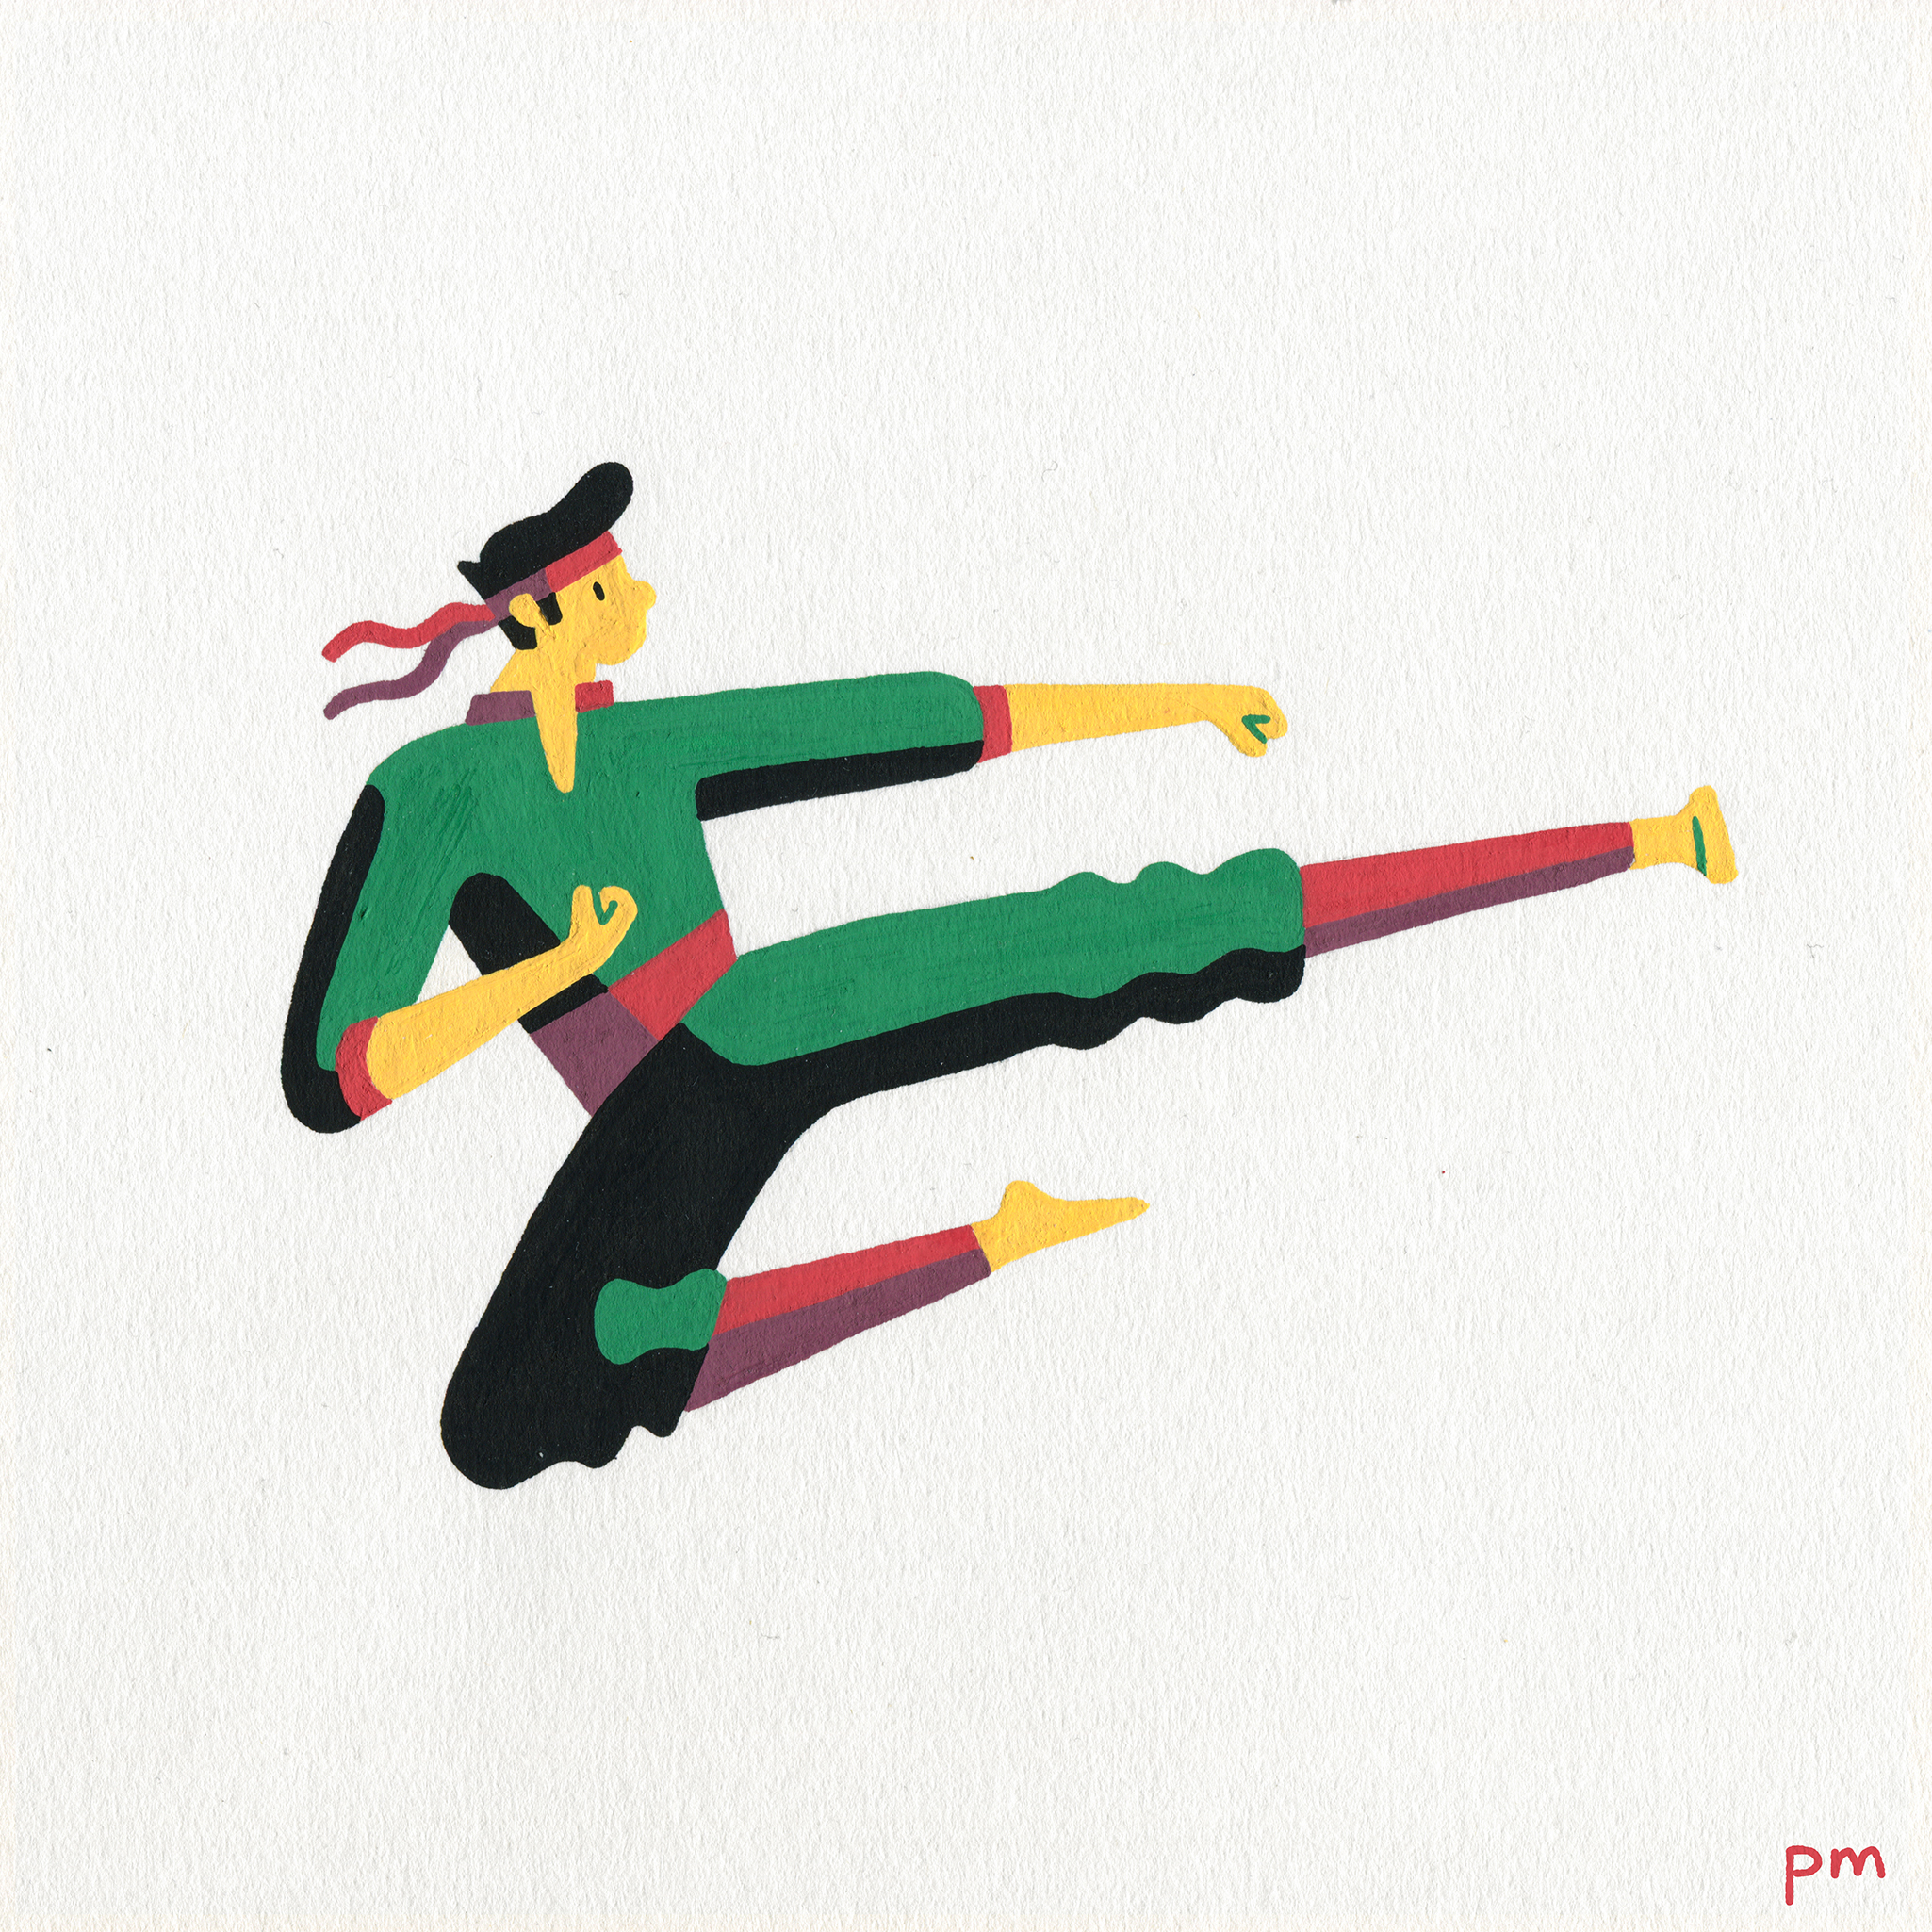 Illustrated martial arts character, displaying a flying-kick karate move for my sports series 'In-Motion', hand-drawn using posca markers.